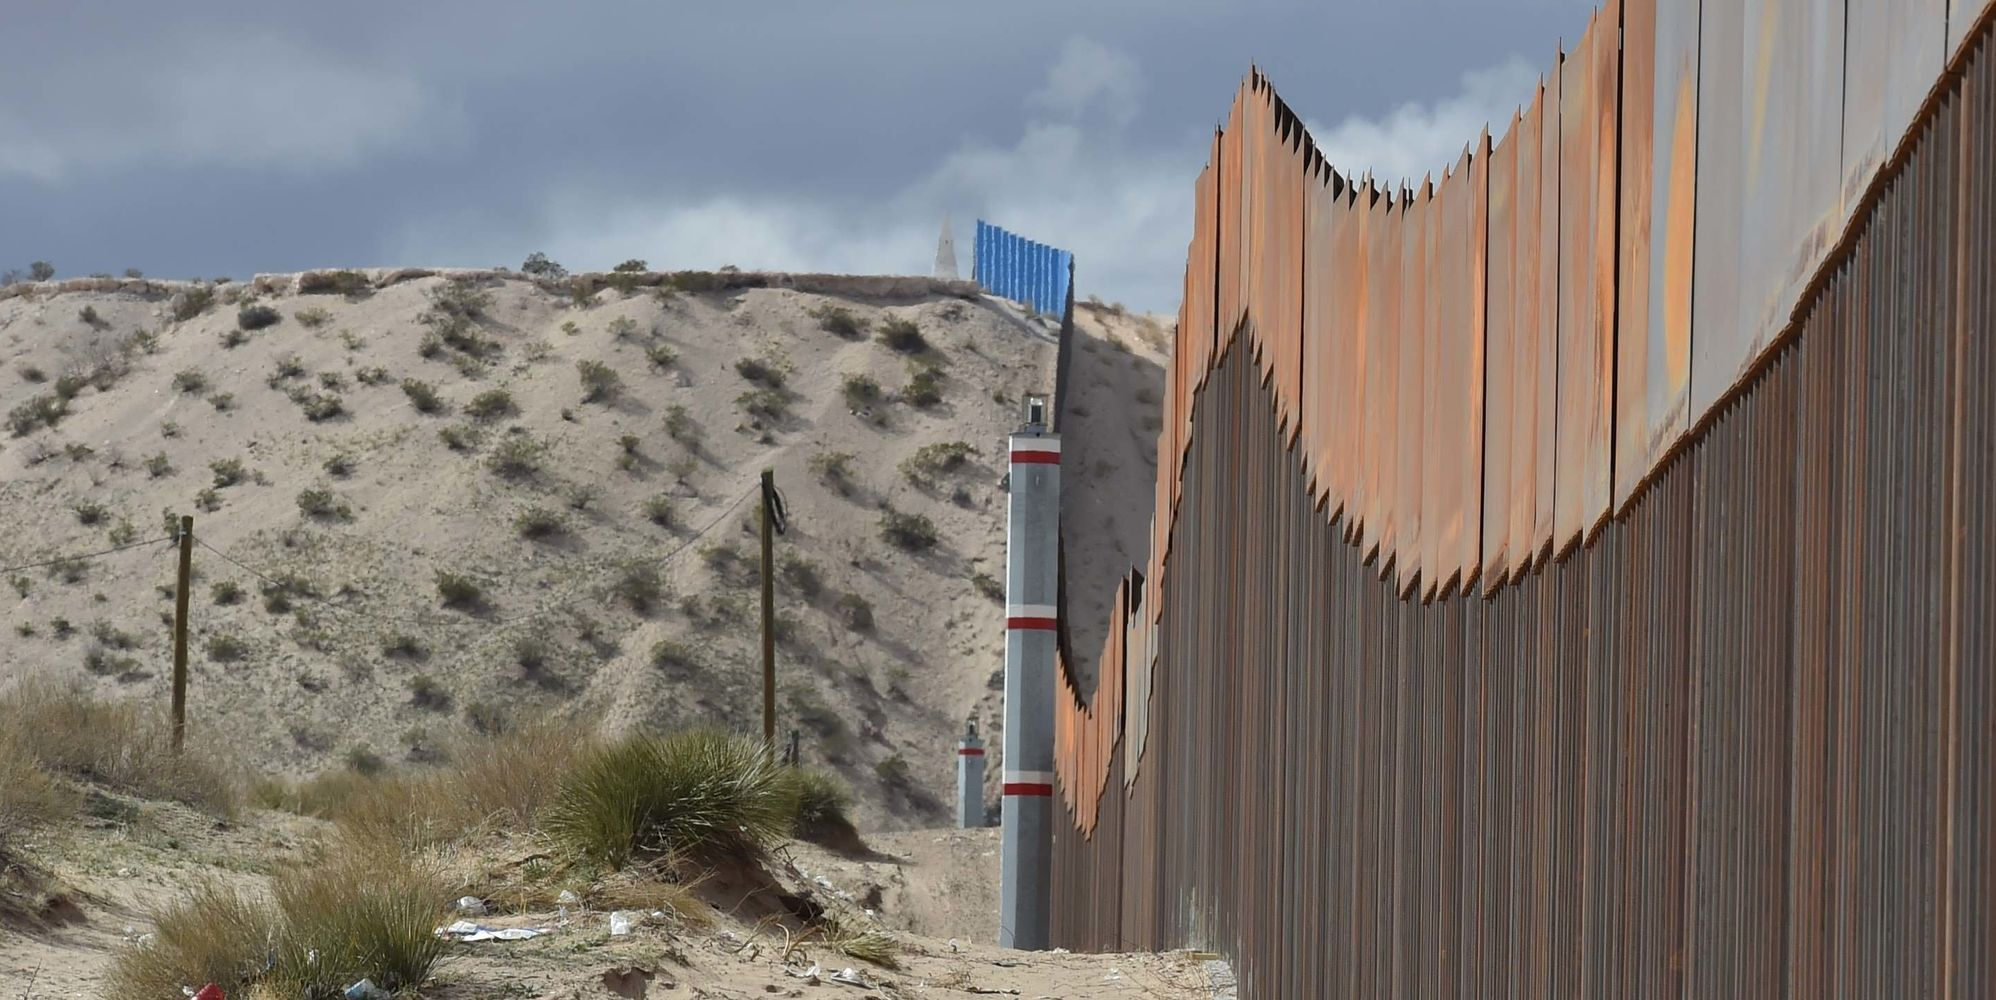 Police: Hunters Shot Each Other Near The Border, Then Blamed Immigrants